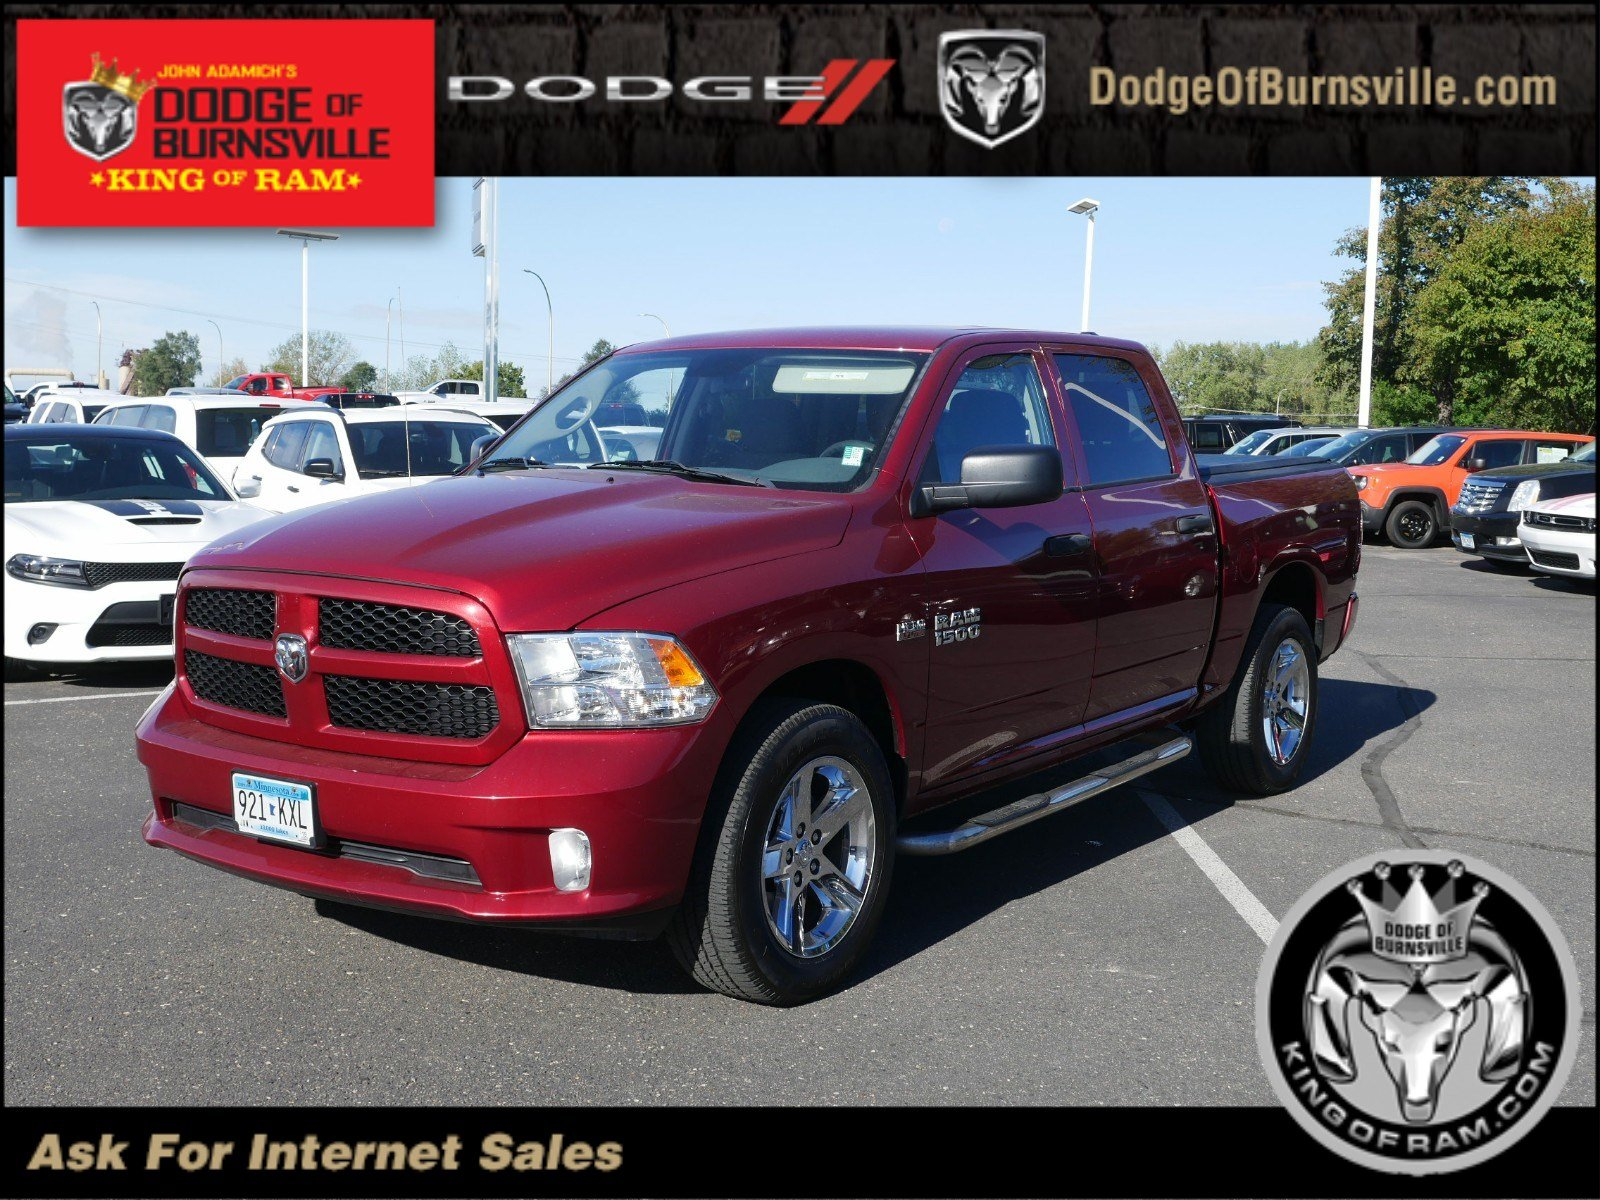 Pre Owned 2013 Ram 1500 Express Crew Cab Pickup In Burnsville 3500 Fuel Filter